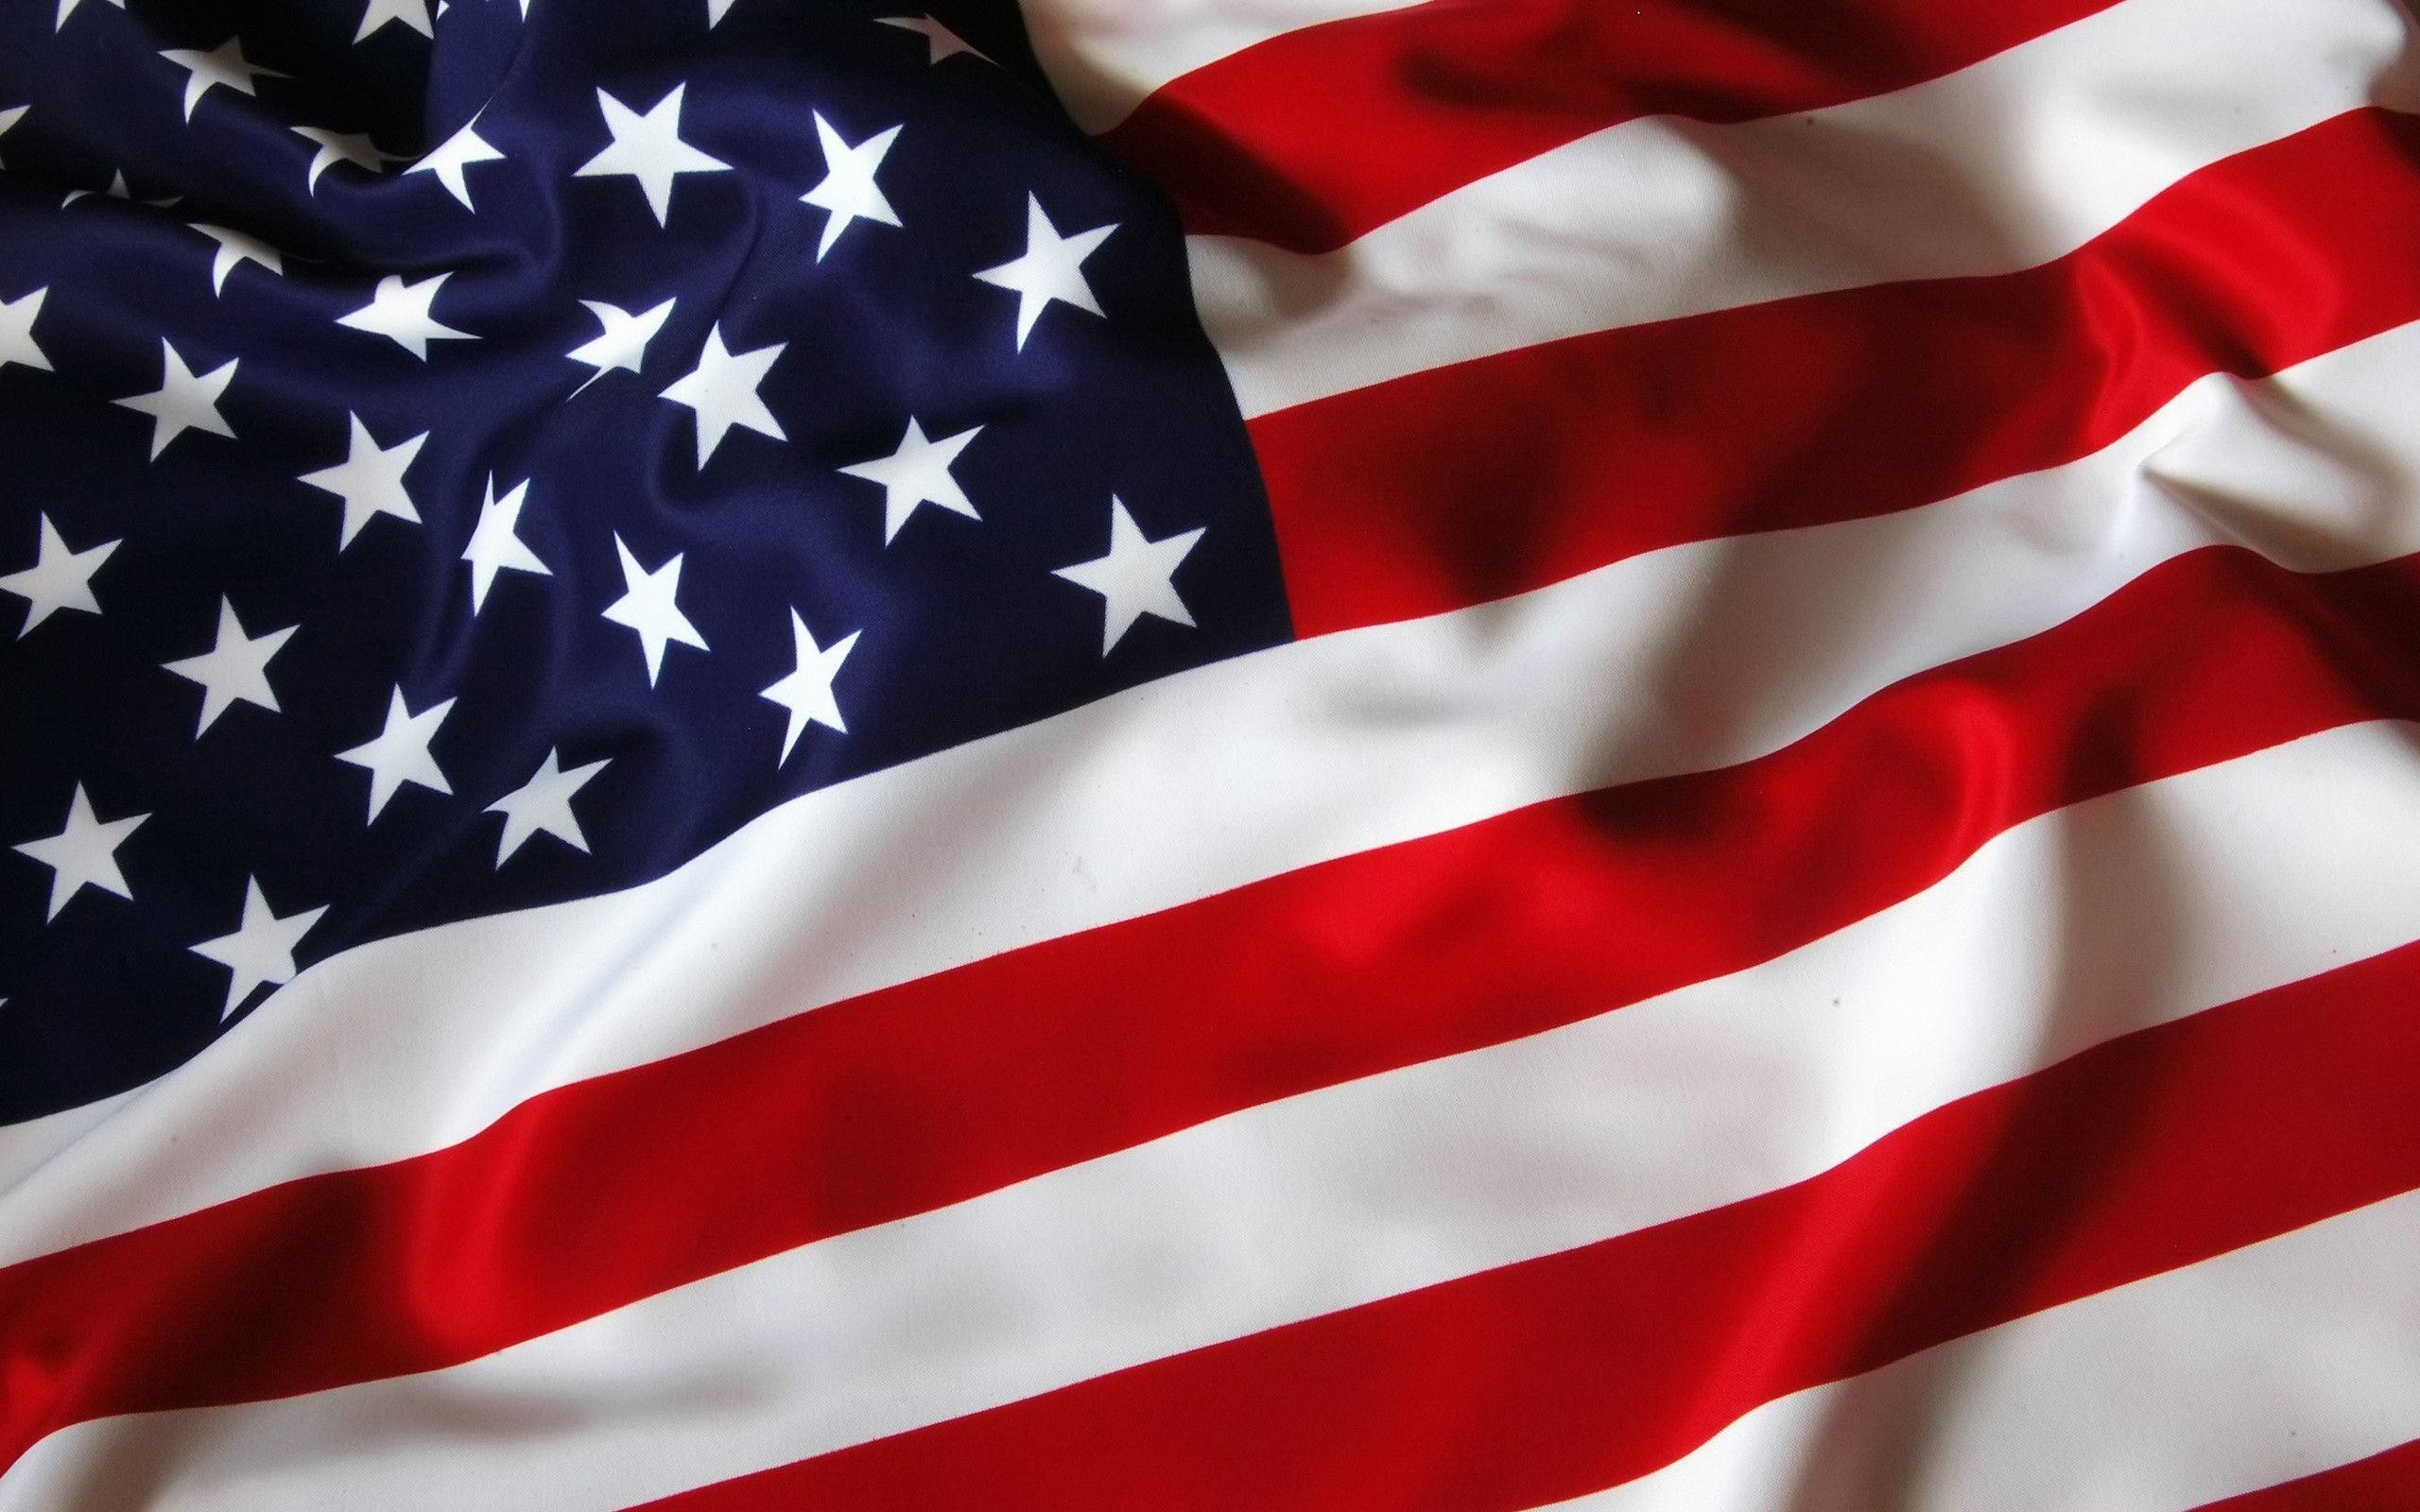 Captivating 2560x1600 American Flag Desktop Wallpaper Images U0026 Pictures   Becuo